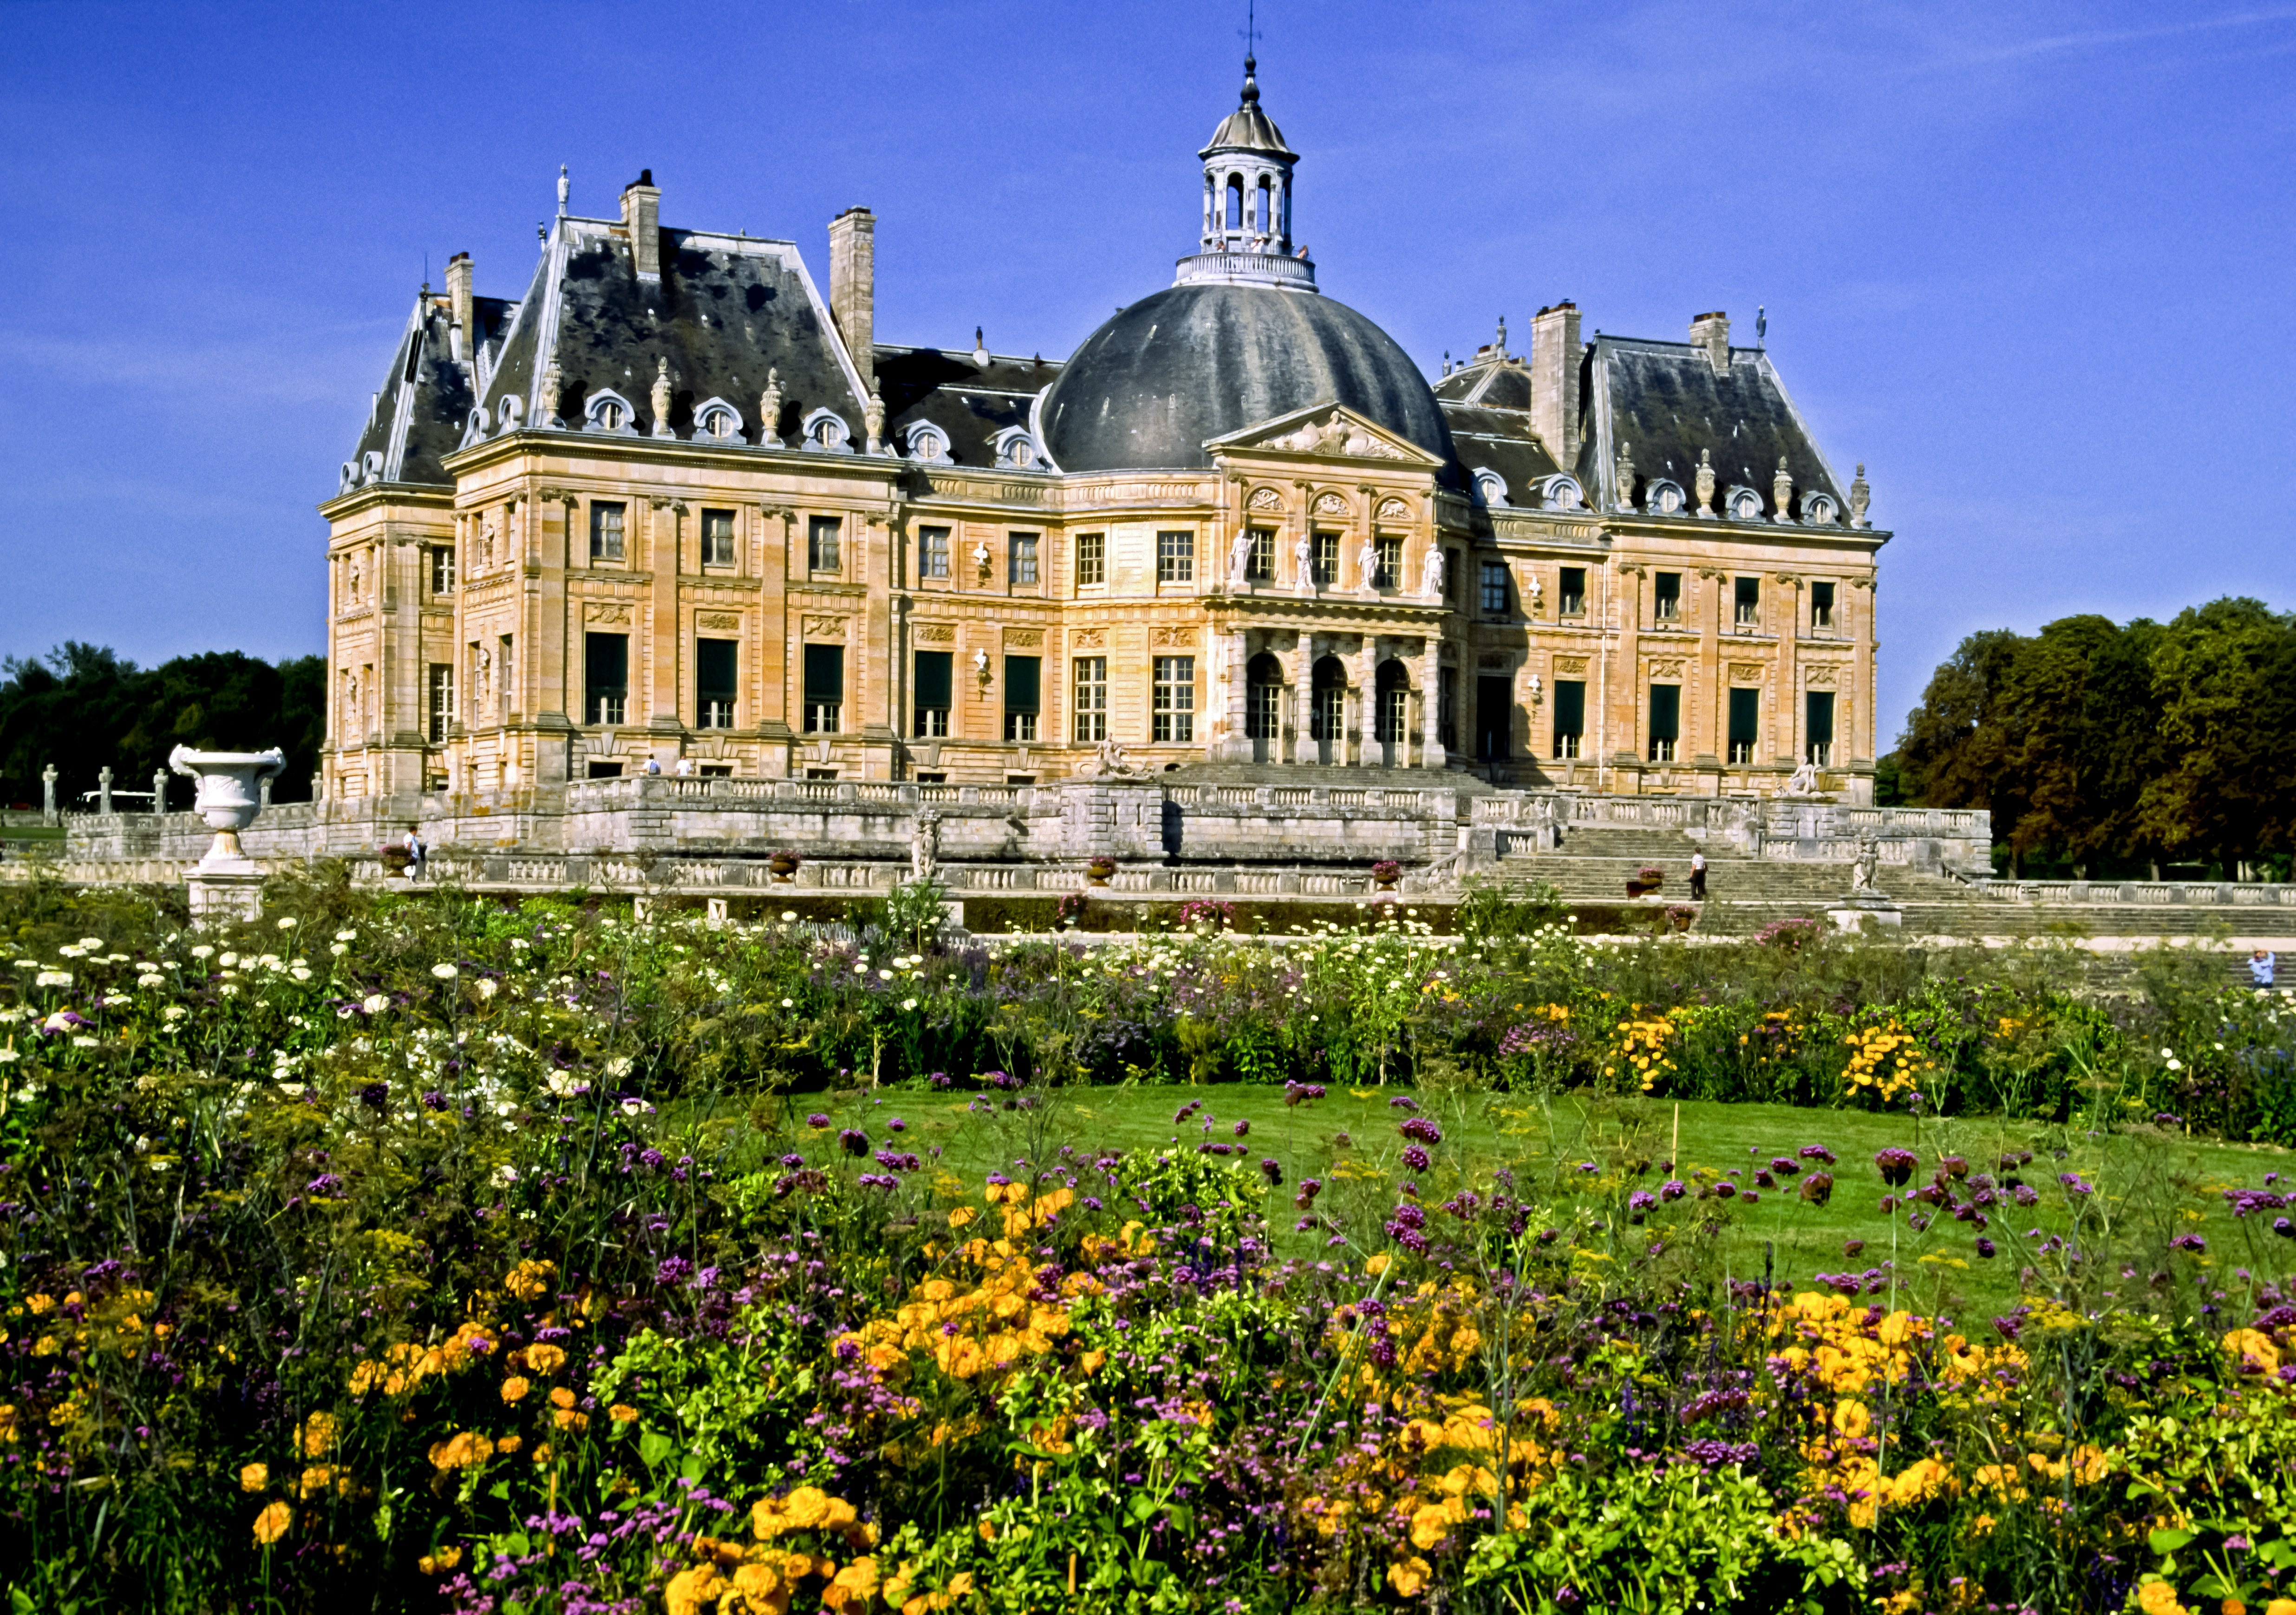 Thieves Made Off With $2.2 Million in Loot From a Lavish French Castle That Helped Inspire Versailles